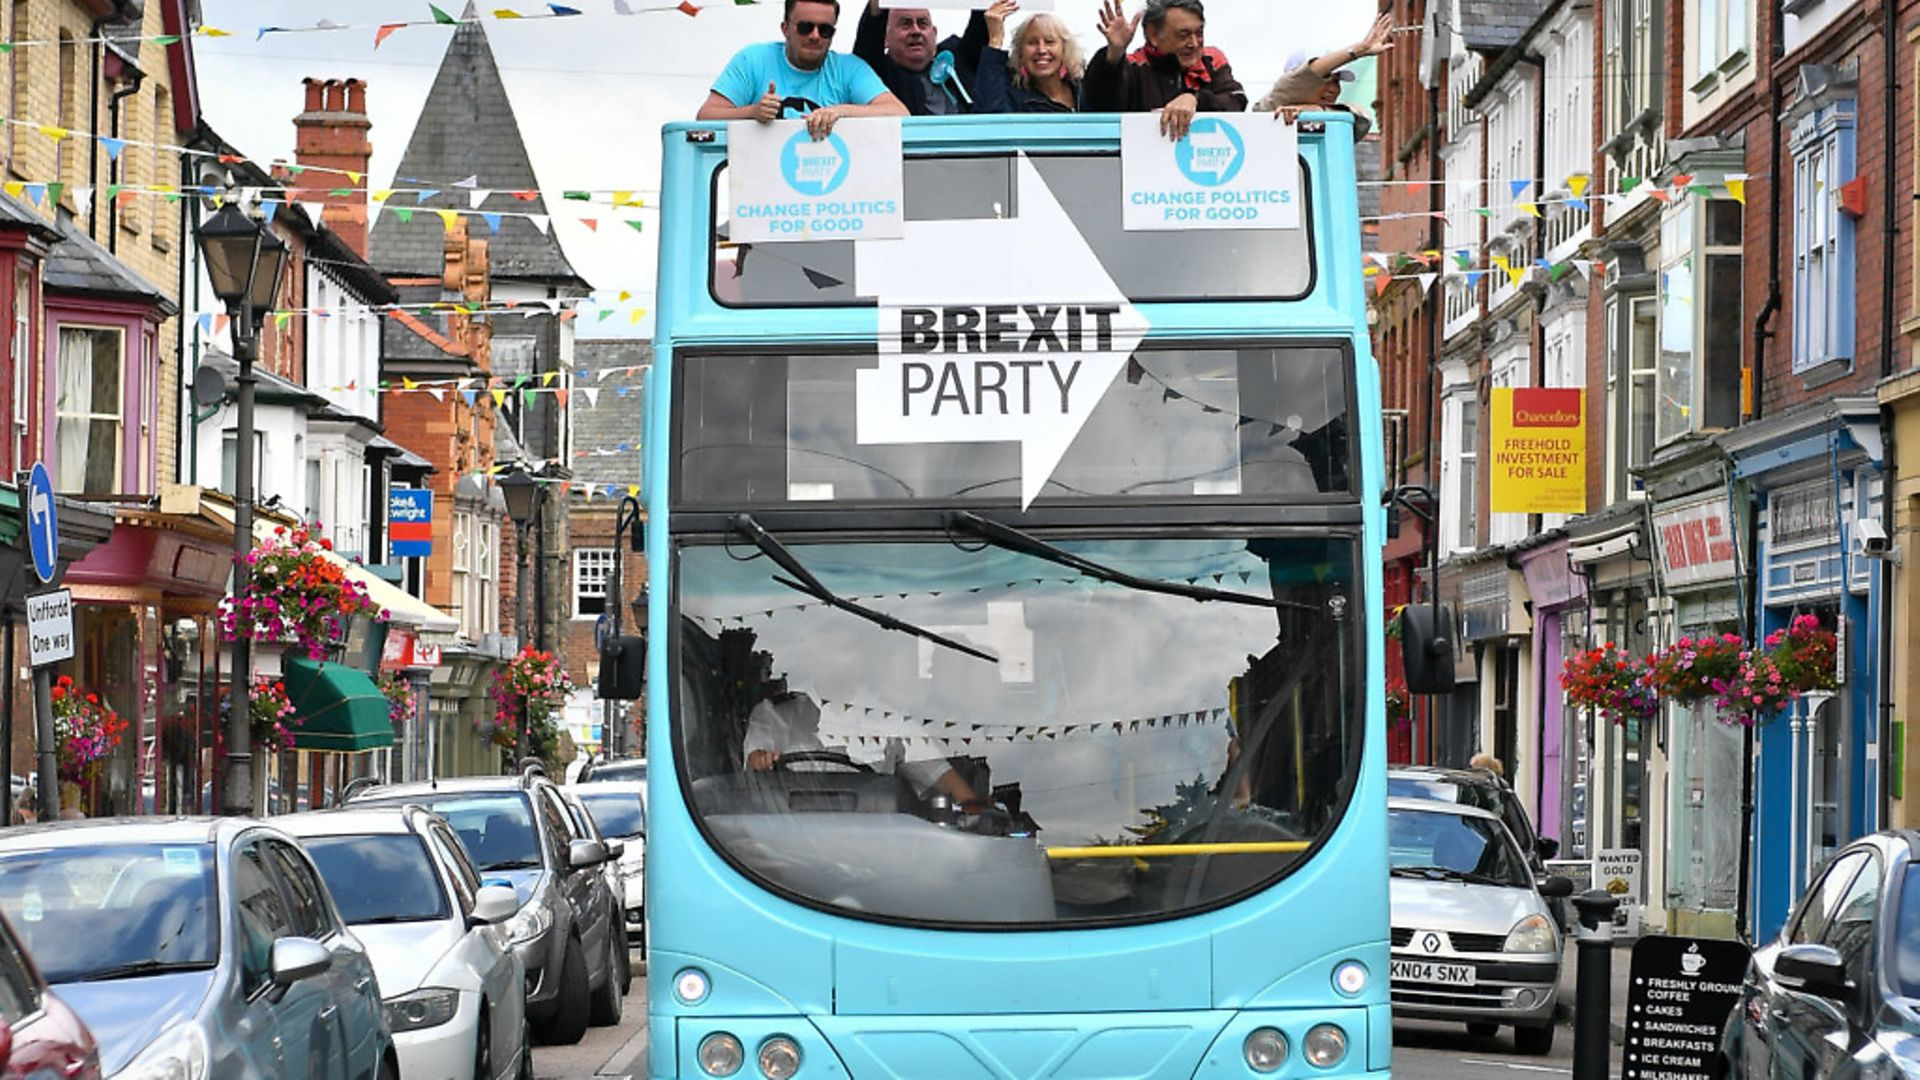 The Brexit Party bus. Photograph: Ben Birchall/PA. - Credit: PA Wire/PA Images